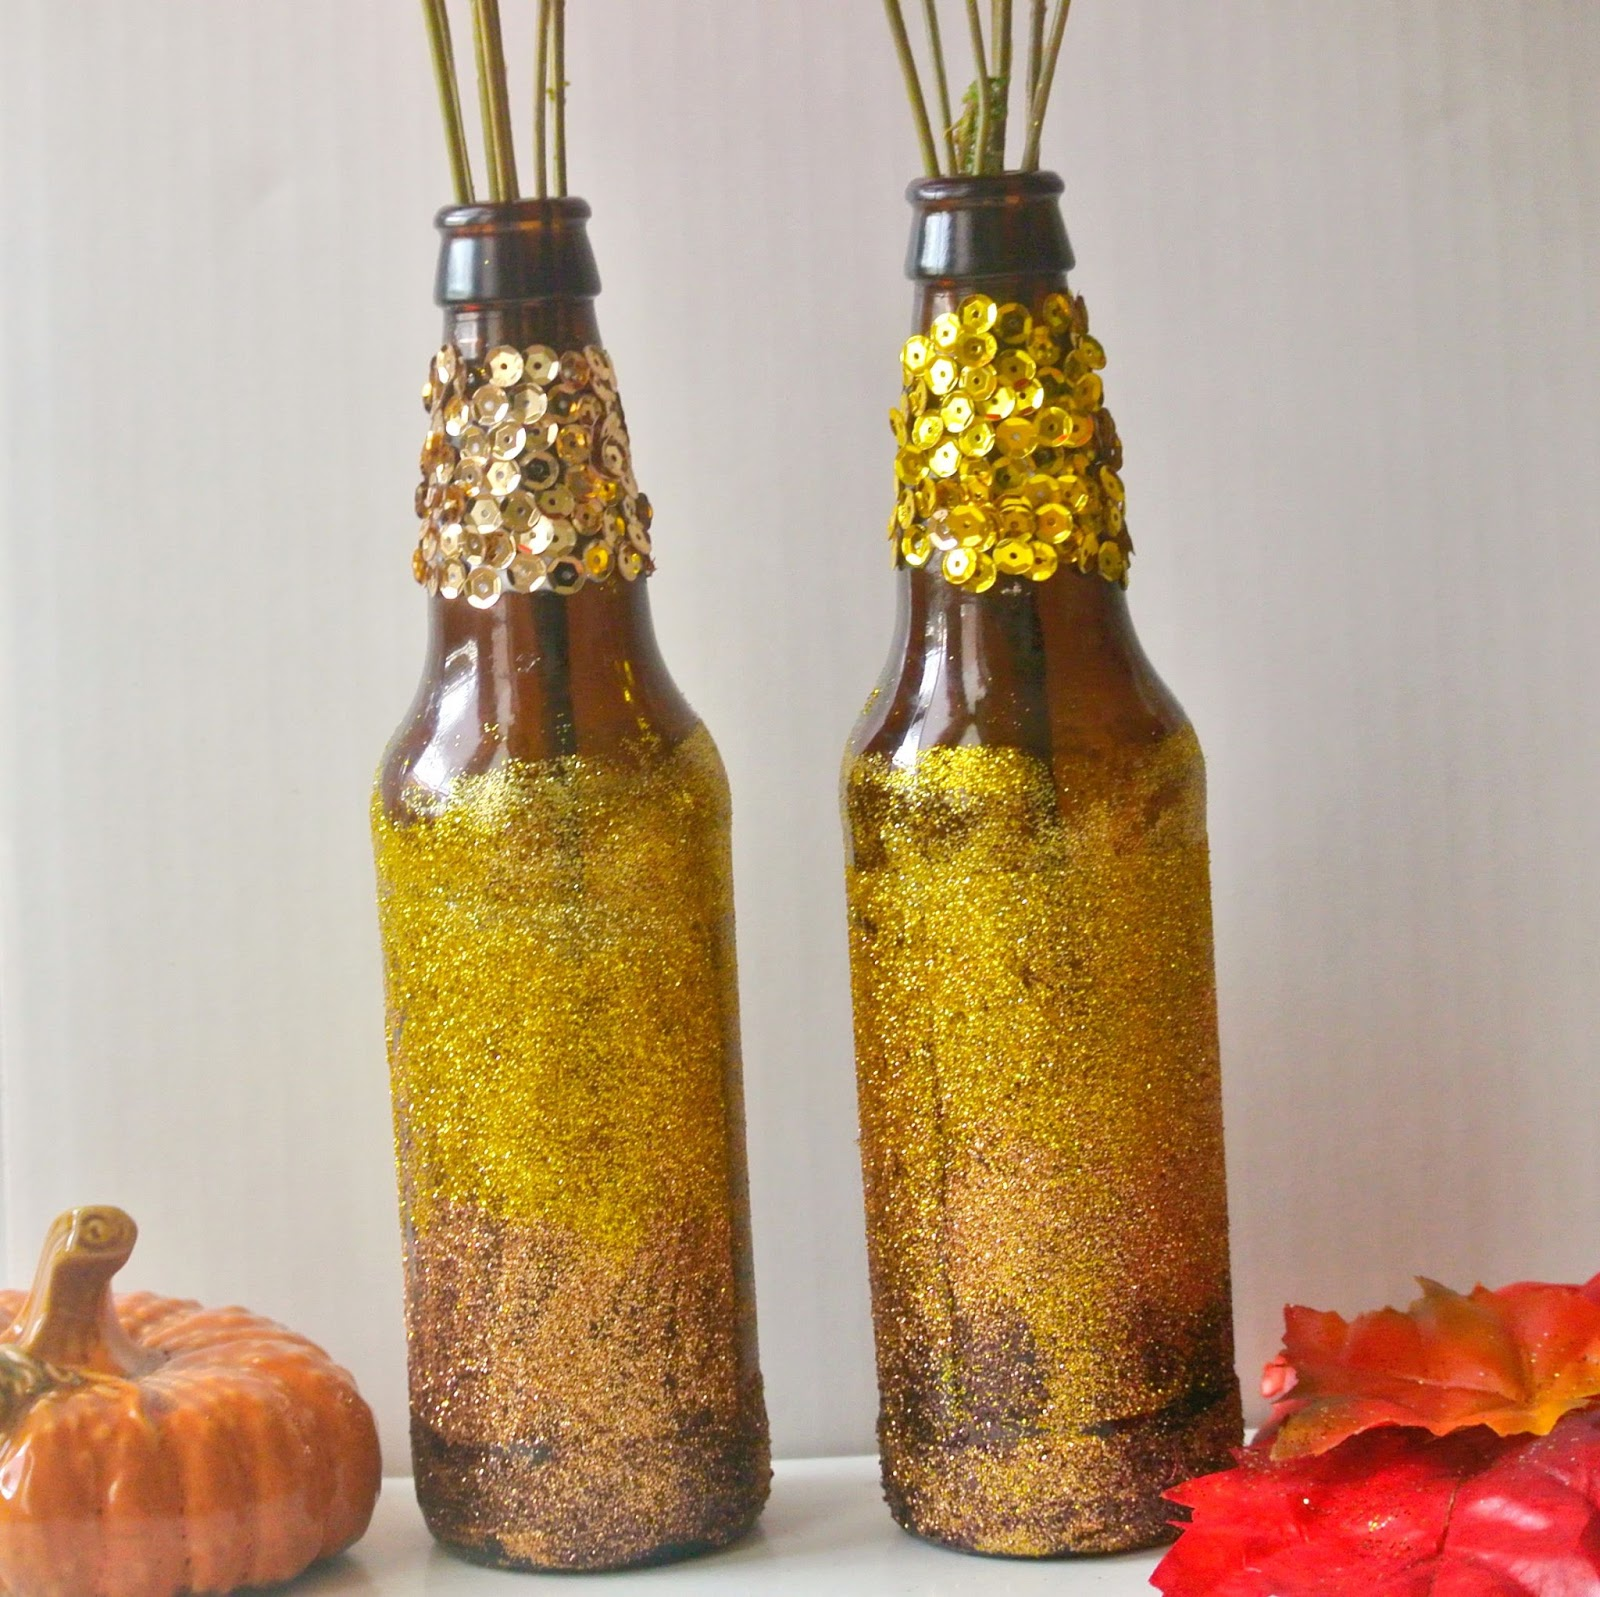 Decorate A Bottle: B Is 4: DIY Fall Recycled Bottle Decor {#TBC Crafters}